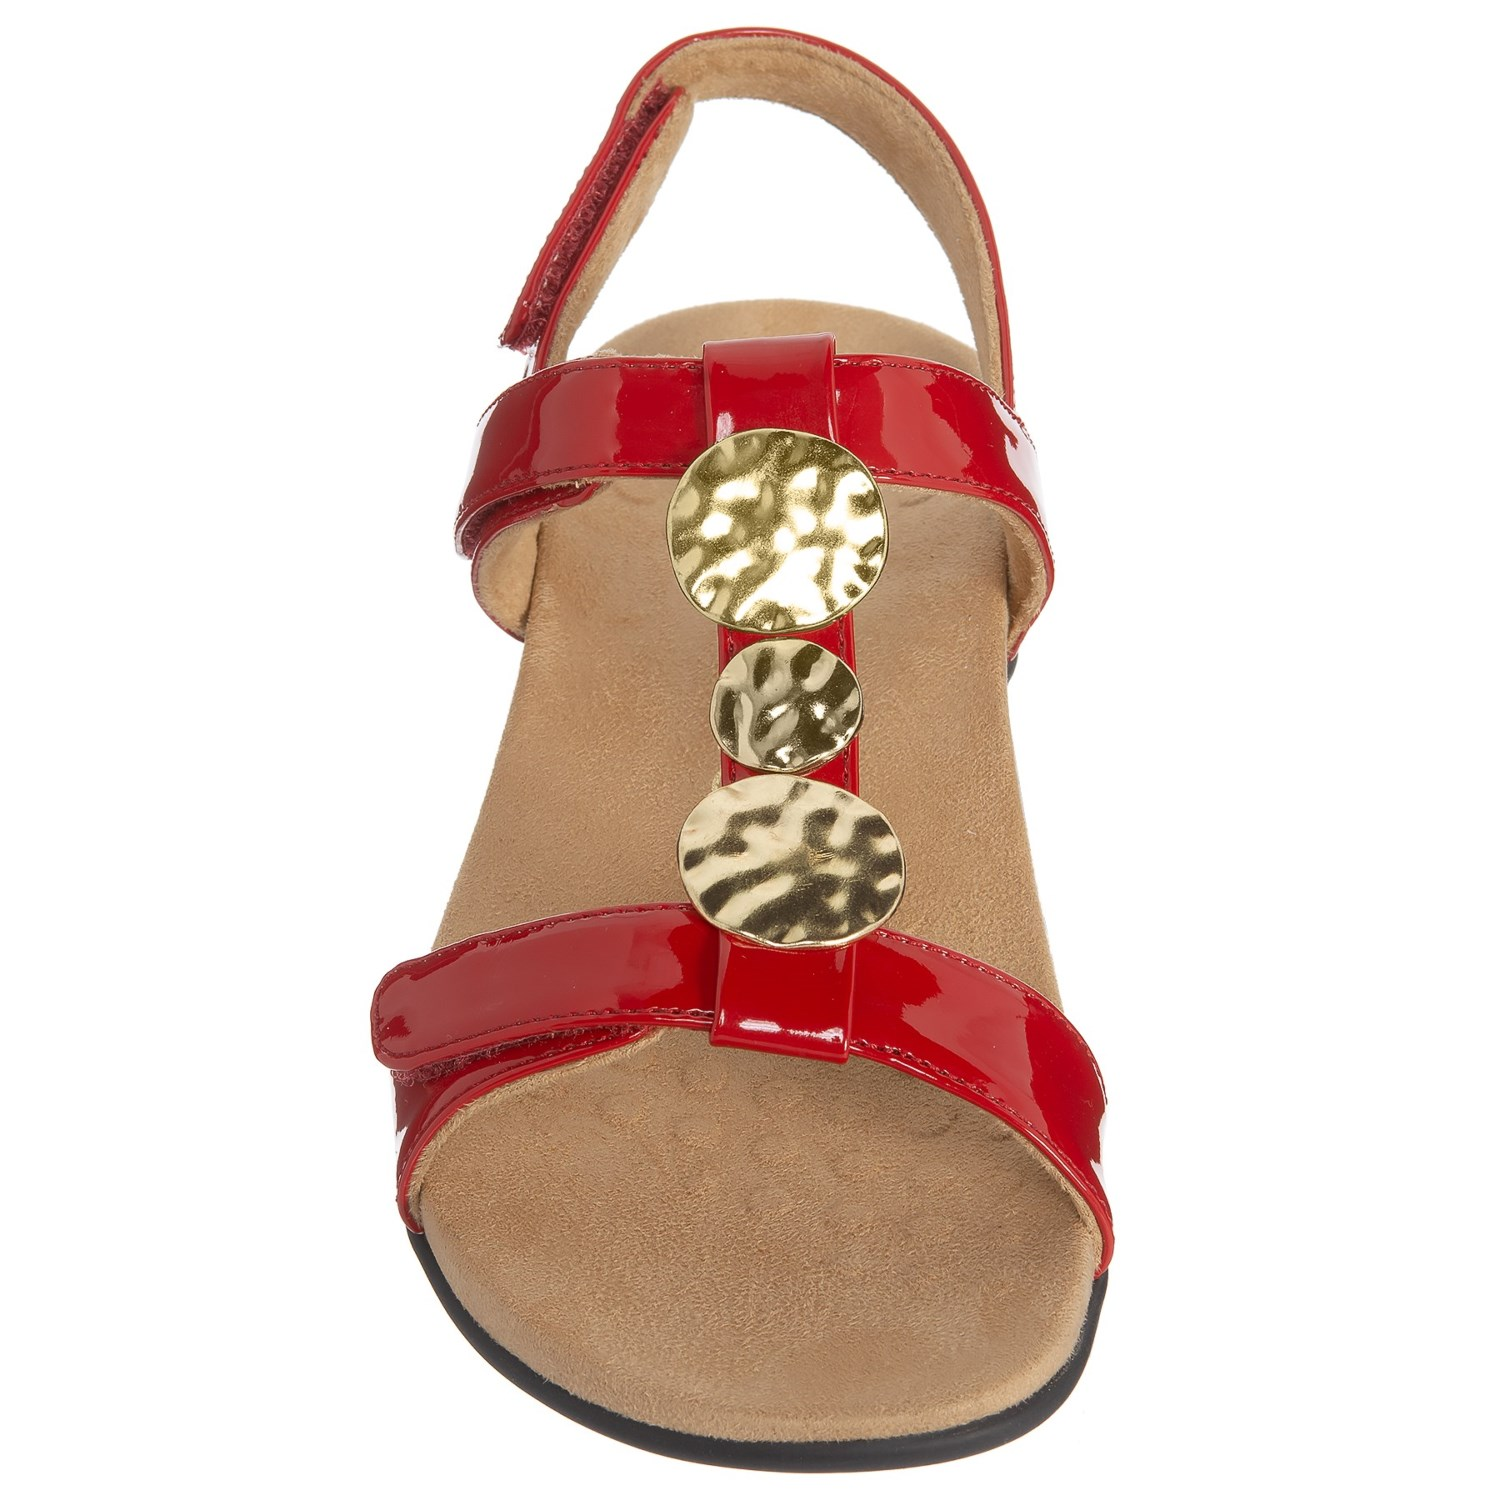 79924334b38b Vionic Orthaheel Technology Farra Comfort Sandal with Arch Support (For  Women)